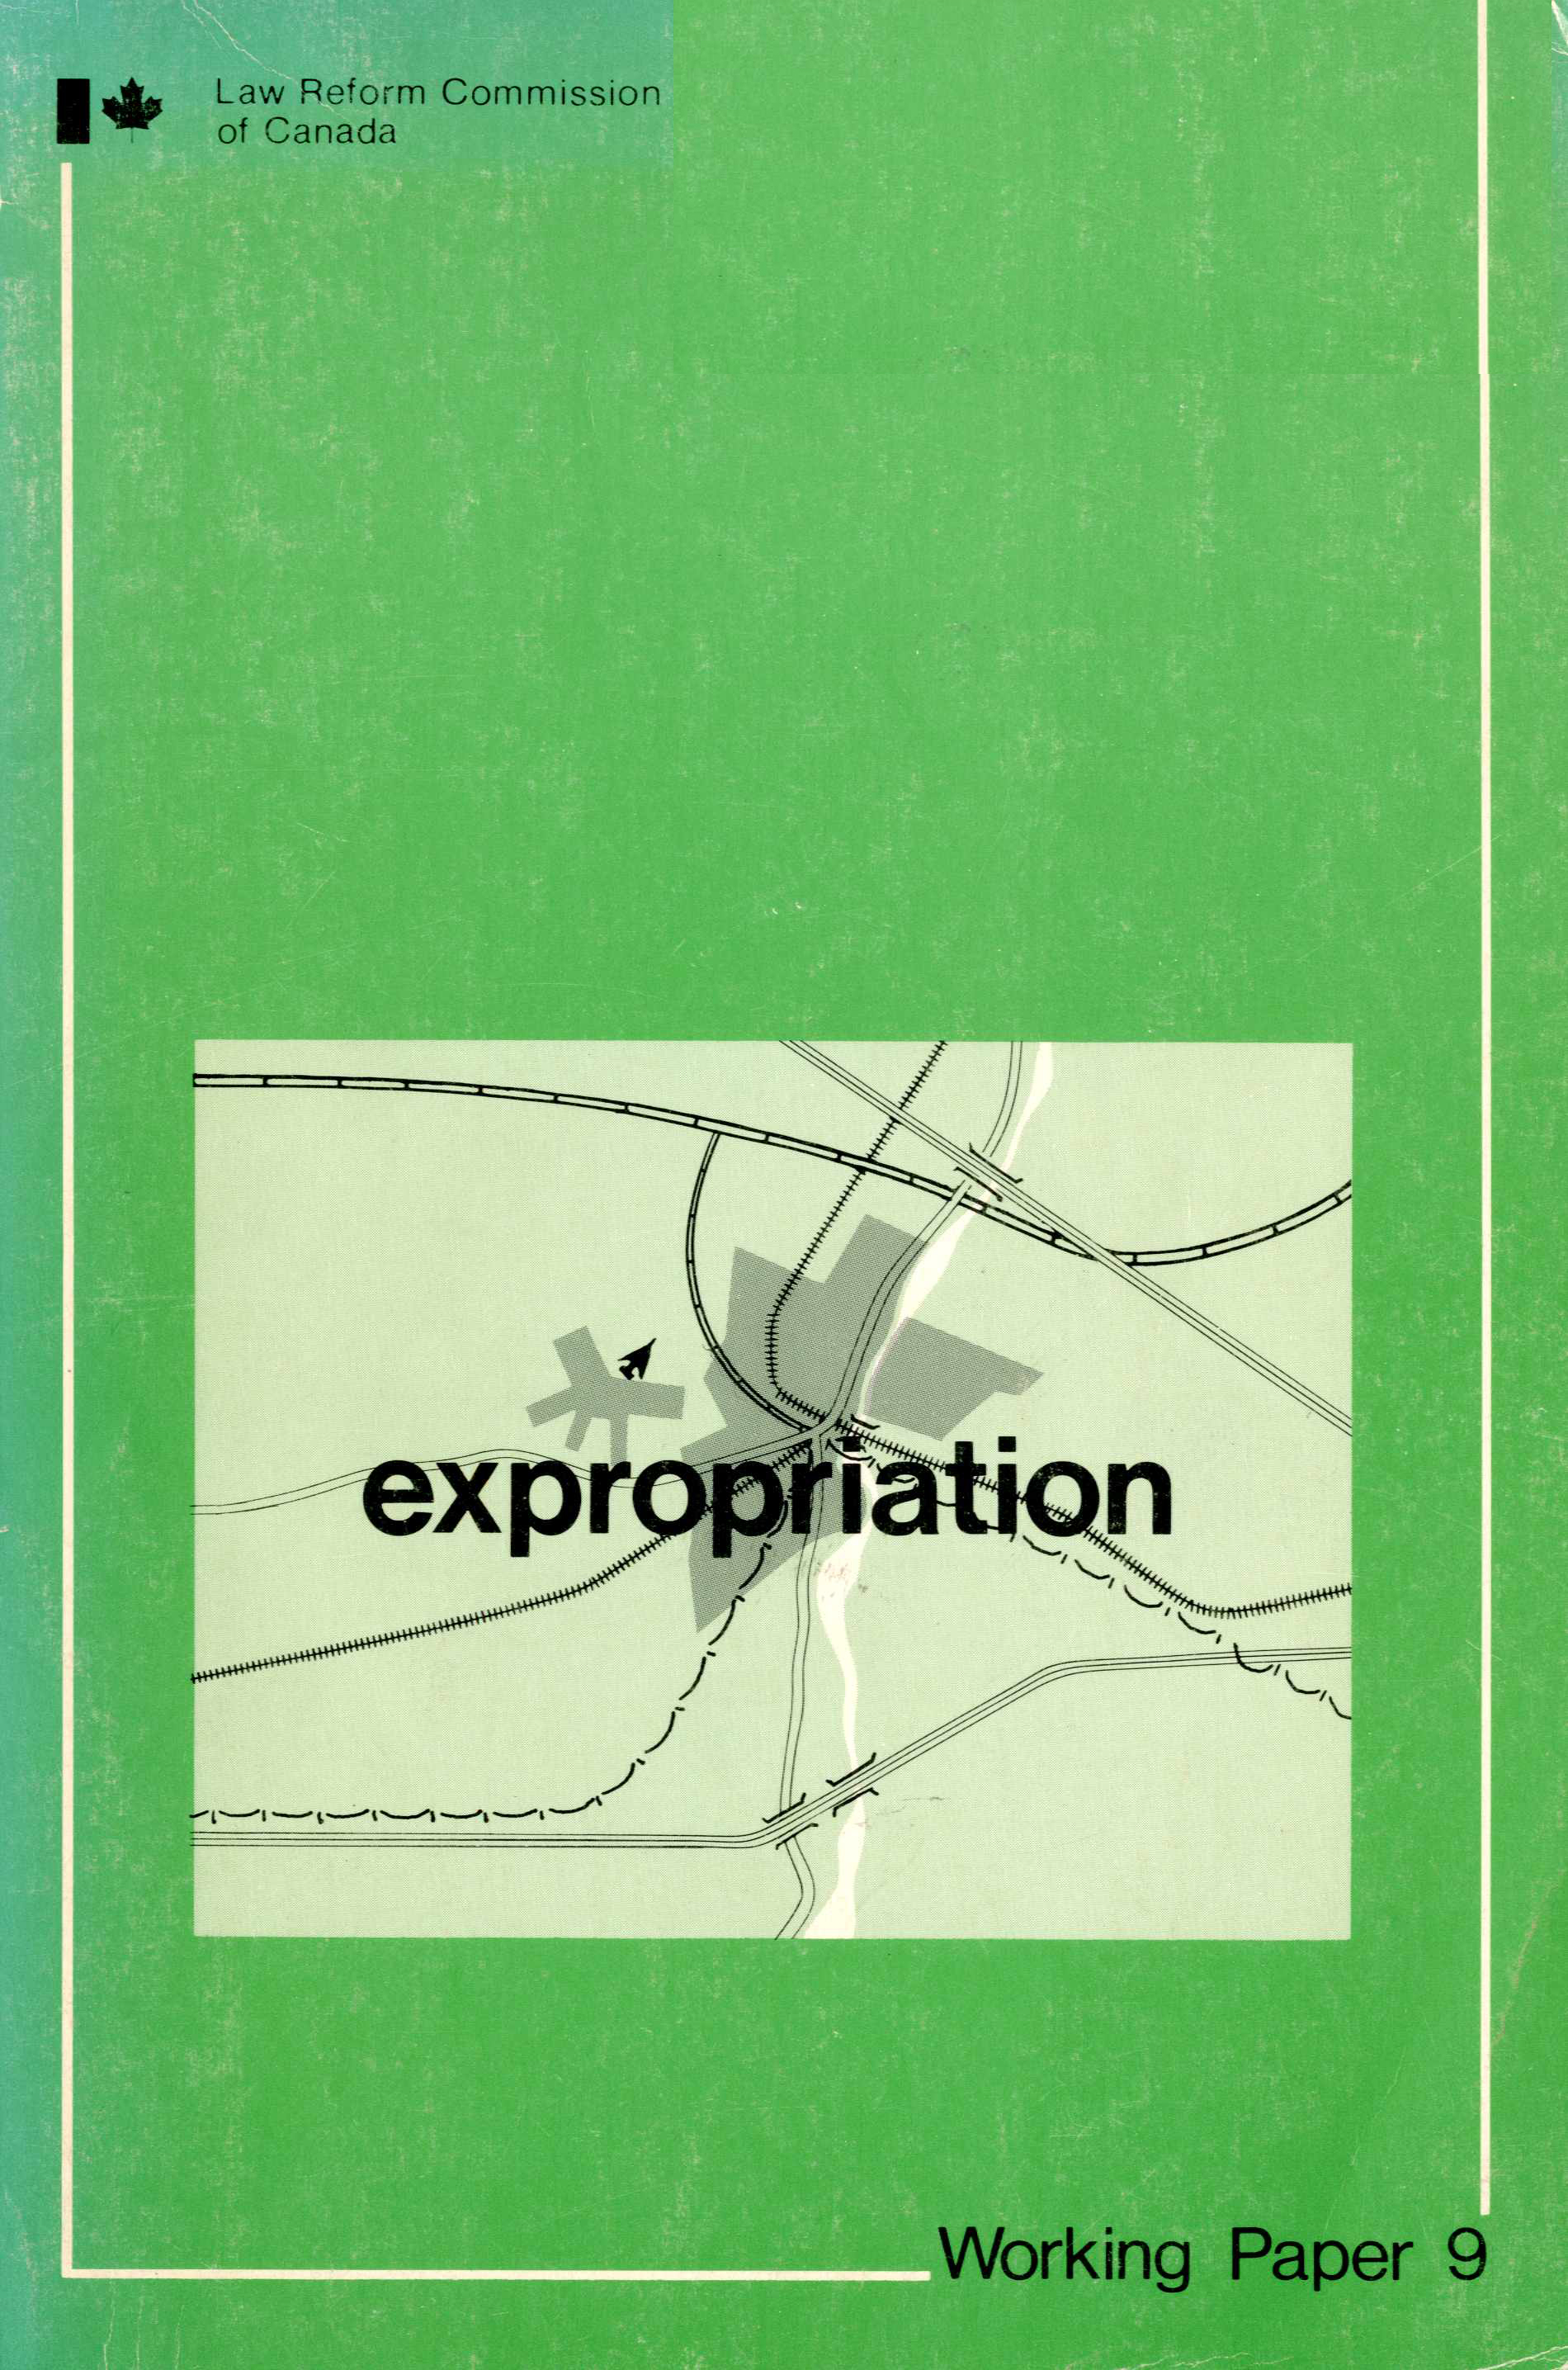 Expropriation Image